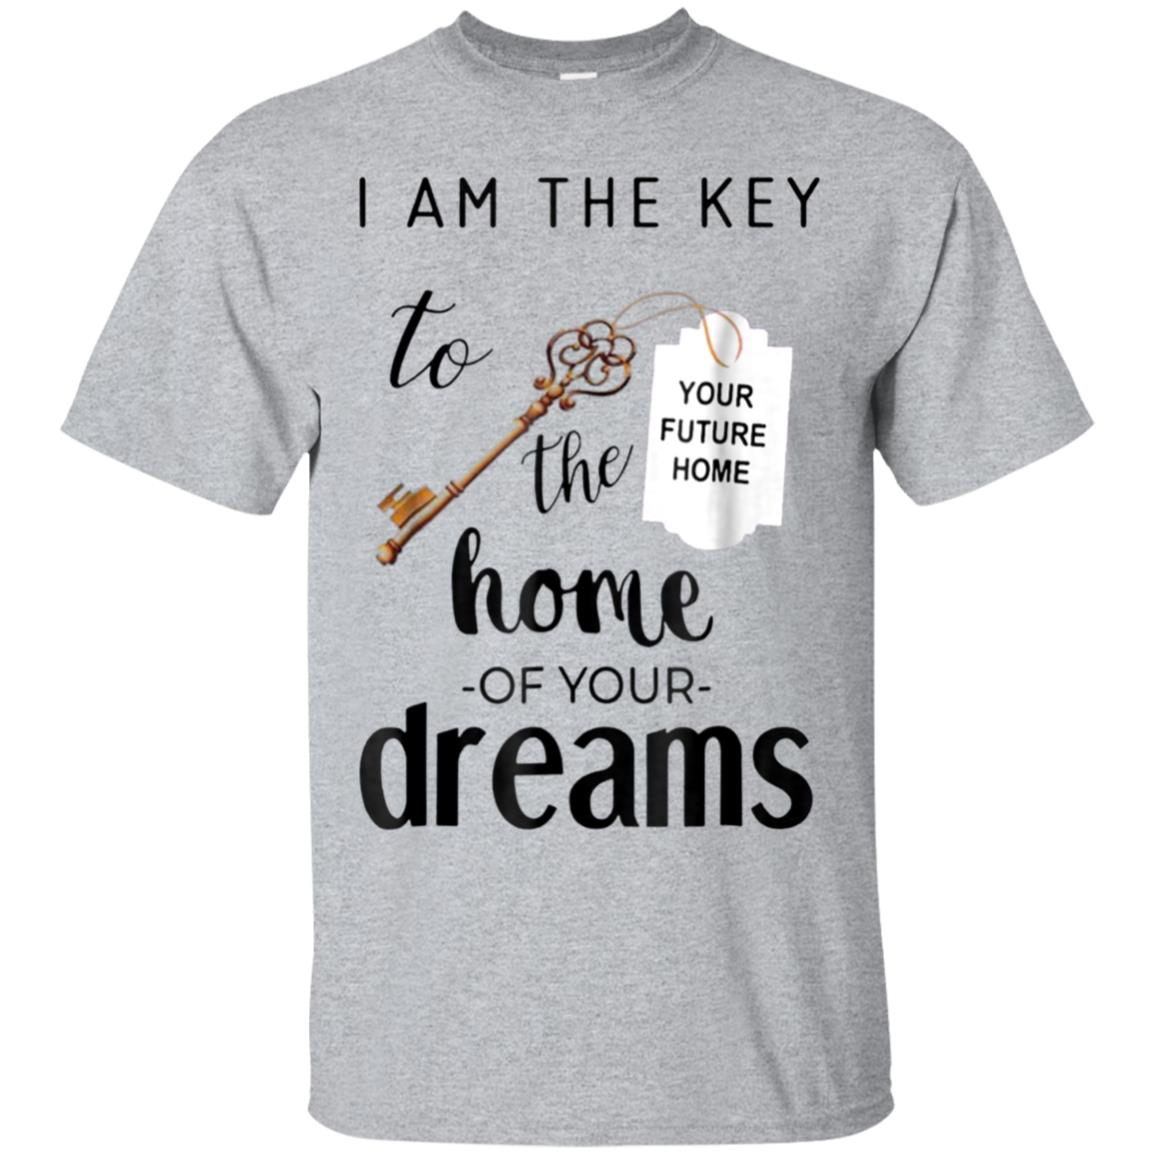 I am the key to the home of your dreams t-shirt your future 99promocode